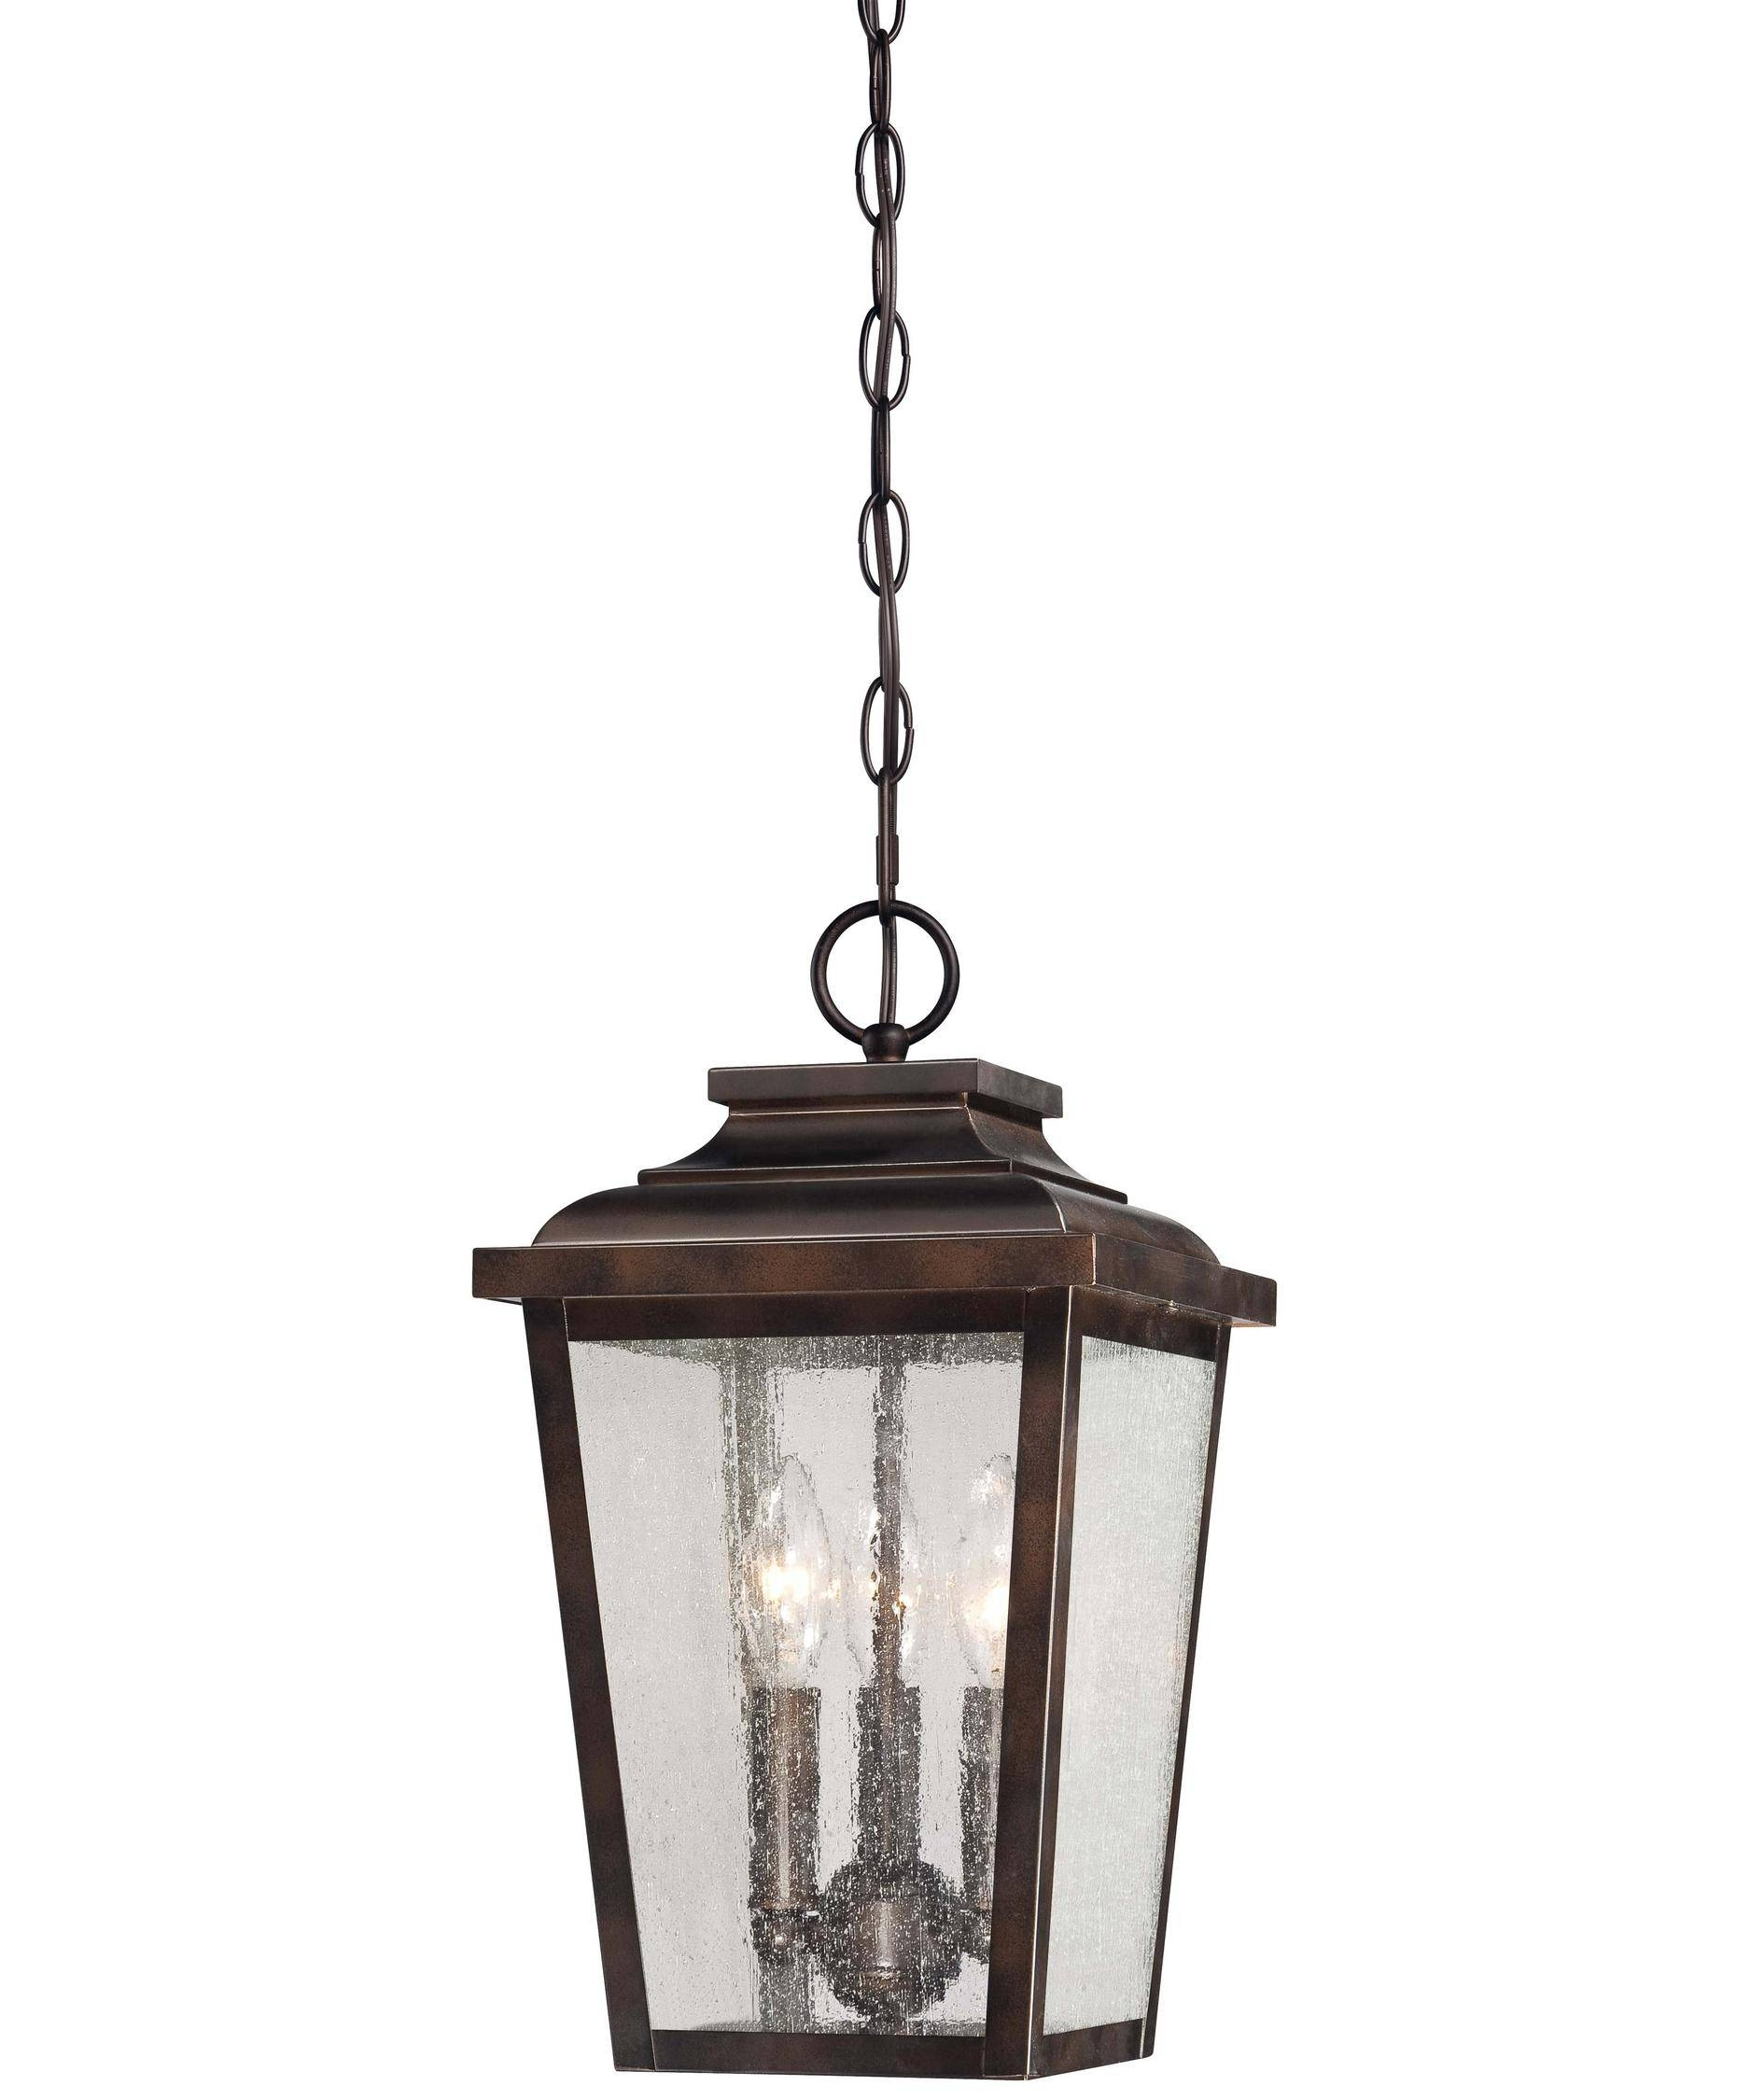 Outdoor Pendant Lighting Fixtures - Baby-Exit in Outdoor Pendant Lighting (Image 8 of 15)